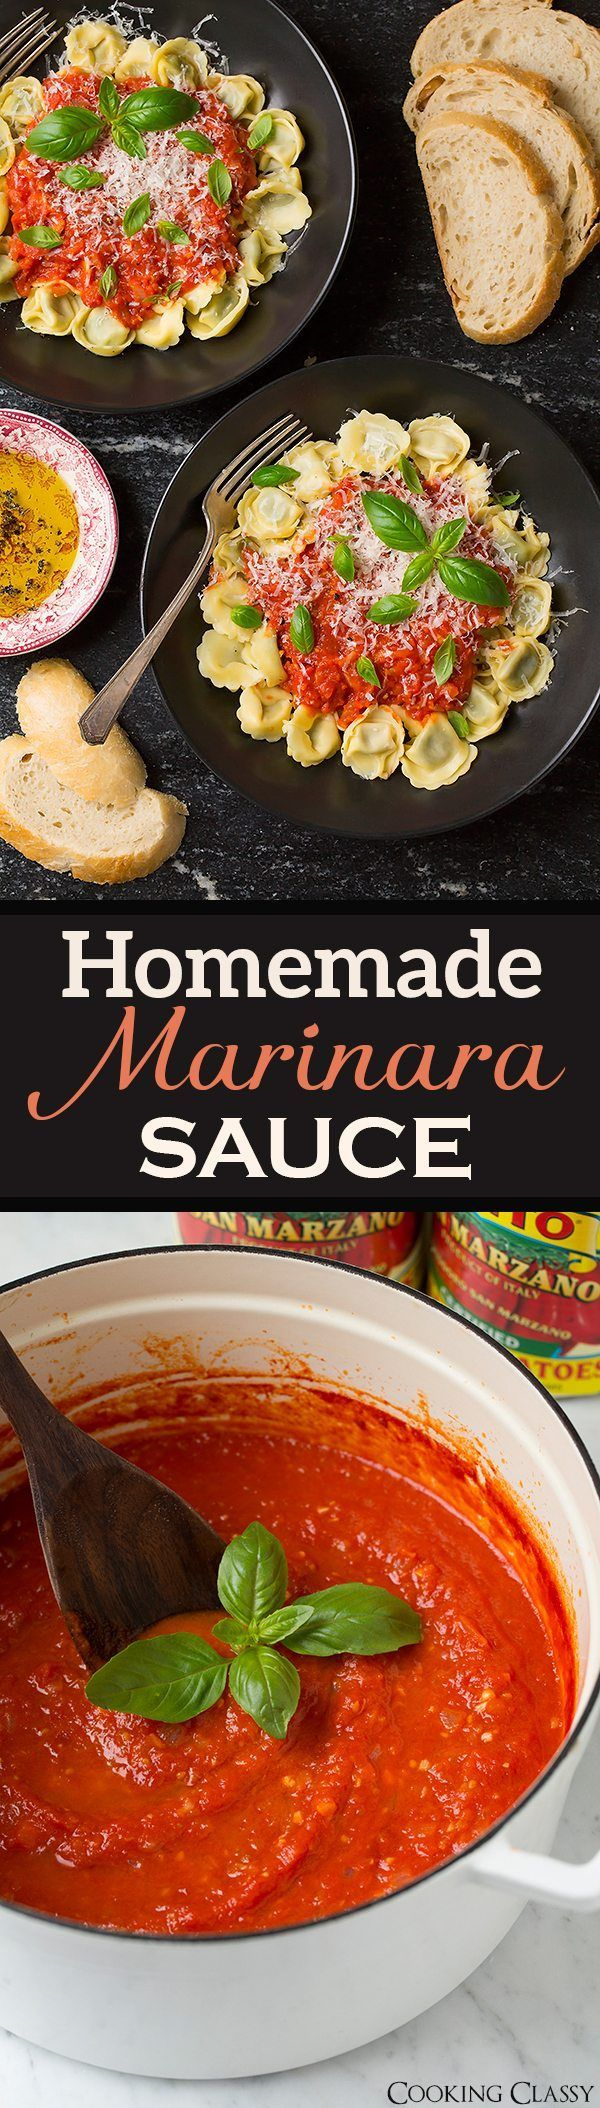 best homemade marinara sauce! It's so easy to make and it's so much better than the bottled stuff! And you'll love the hint of butter. Serve over spaghetti or tortellini for a simple, tasty dinner.